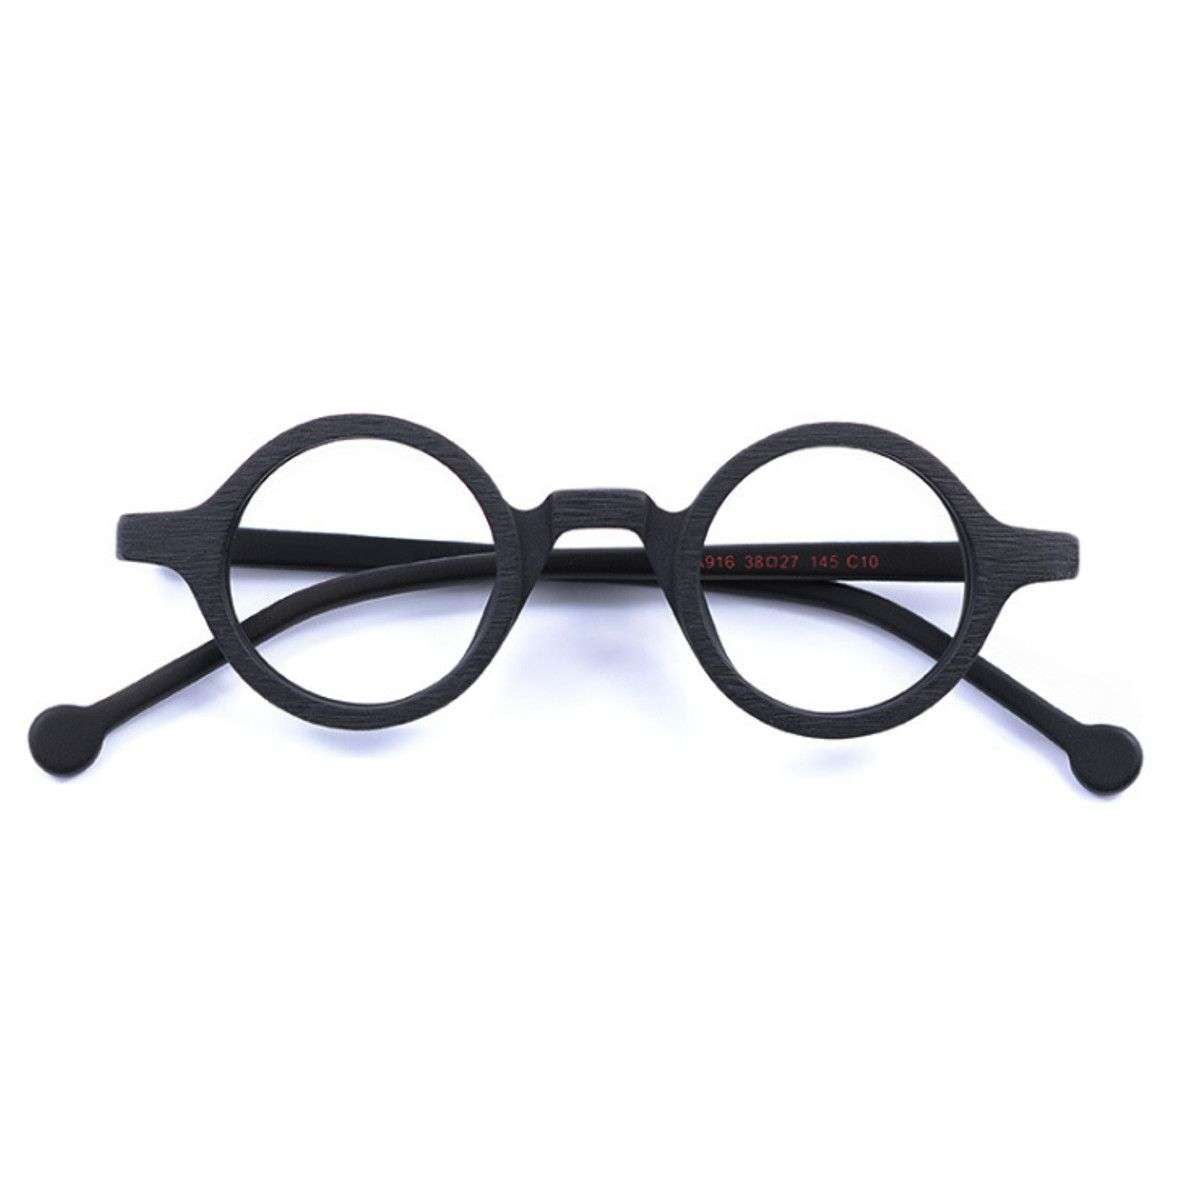 0651f79af83d 38mm Vintage Small Round Eyeglass Frames Acetate Rx-able Spectacles Glasses